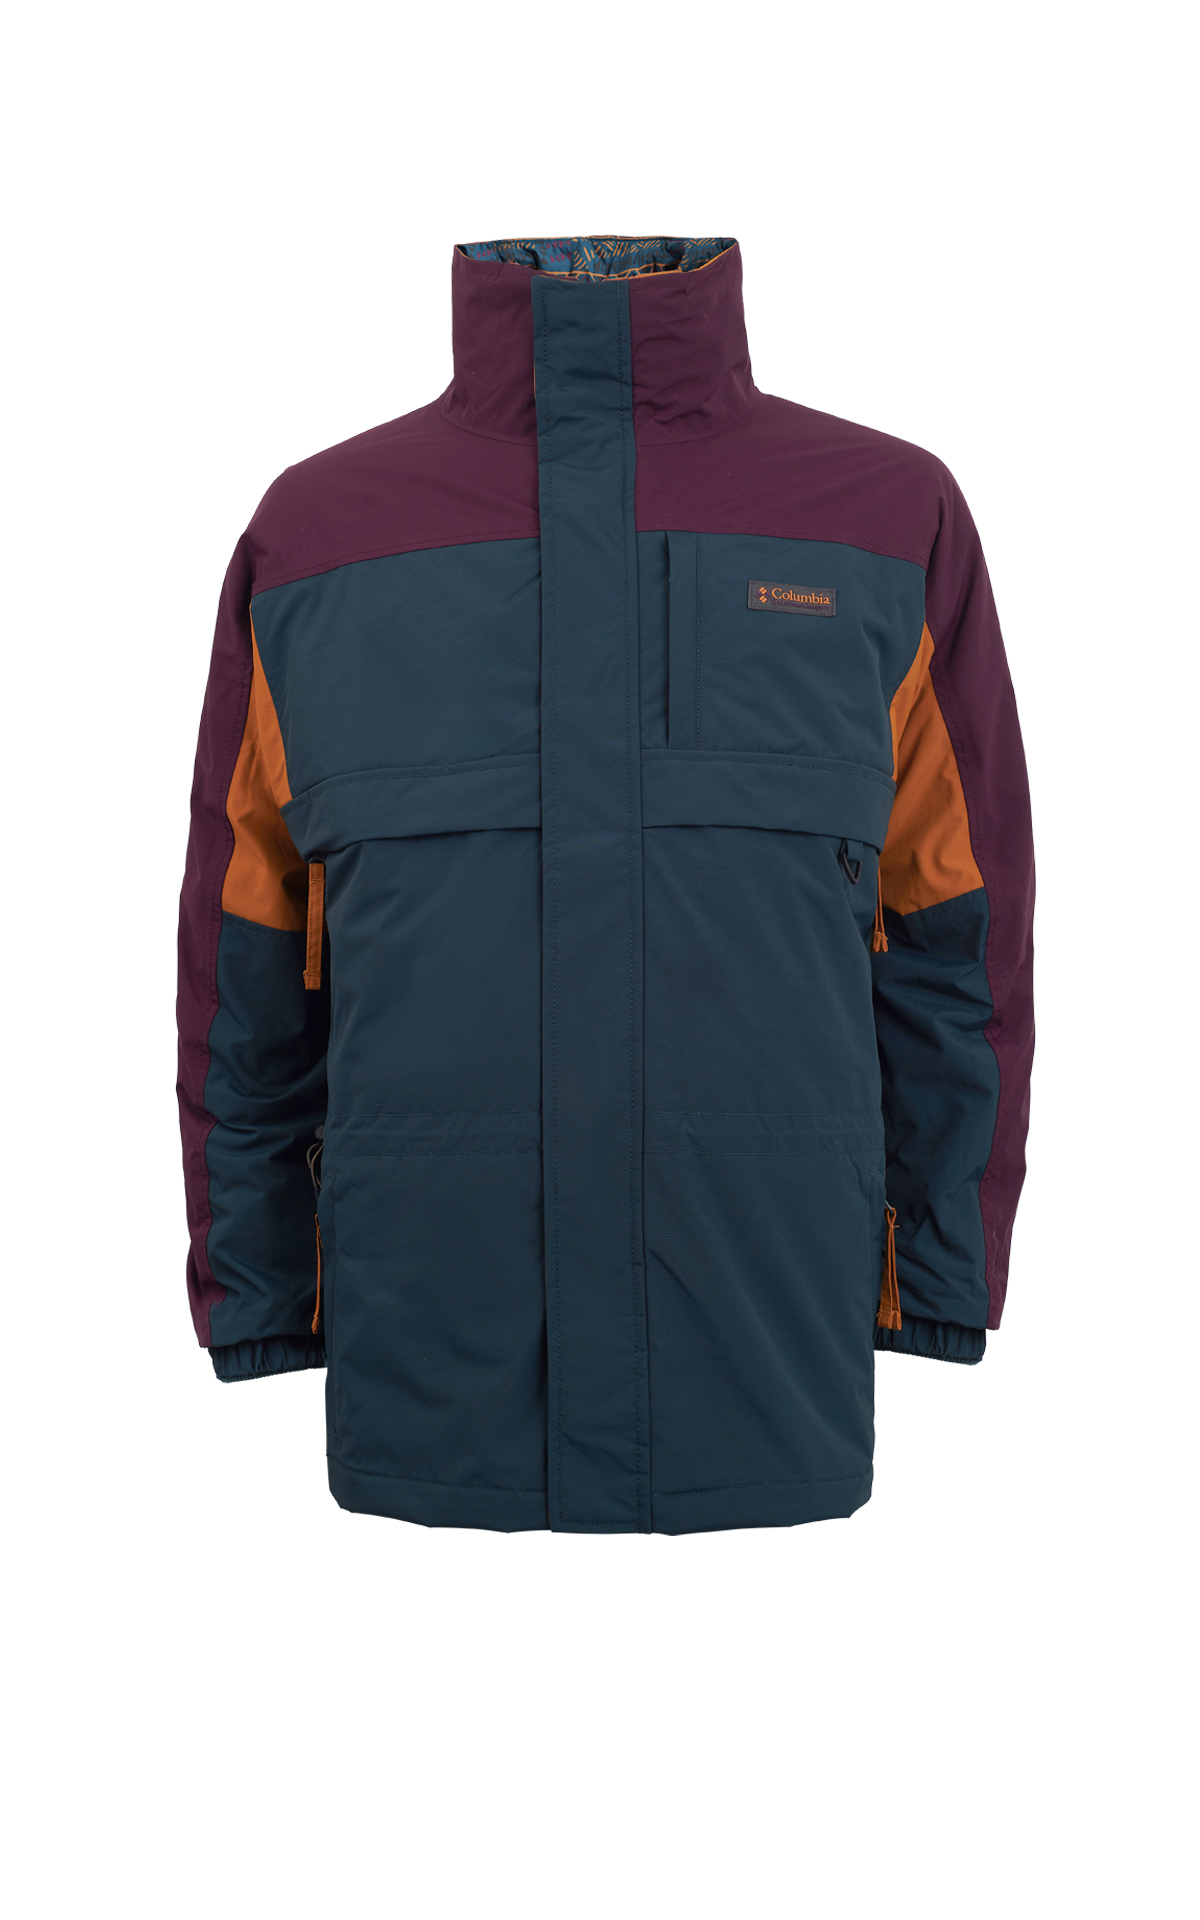 Tricolor jacket Columbia